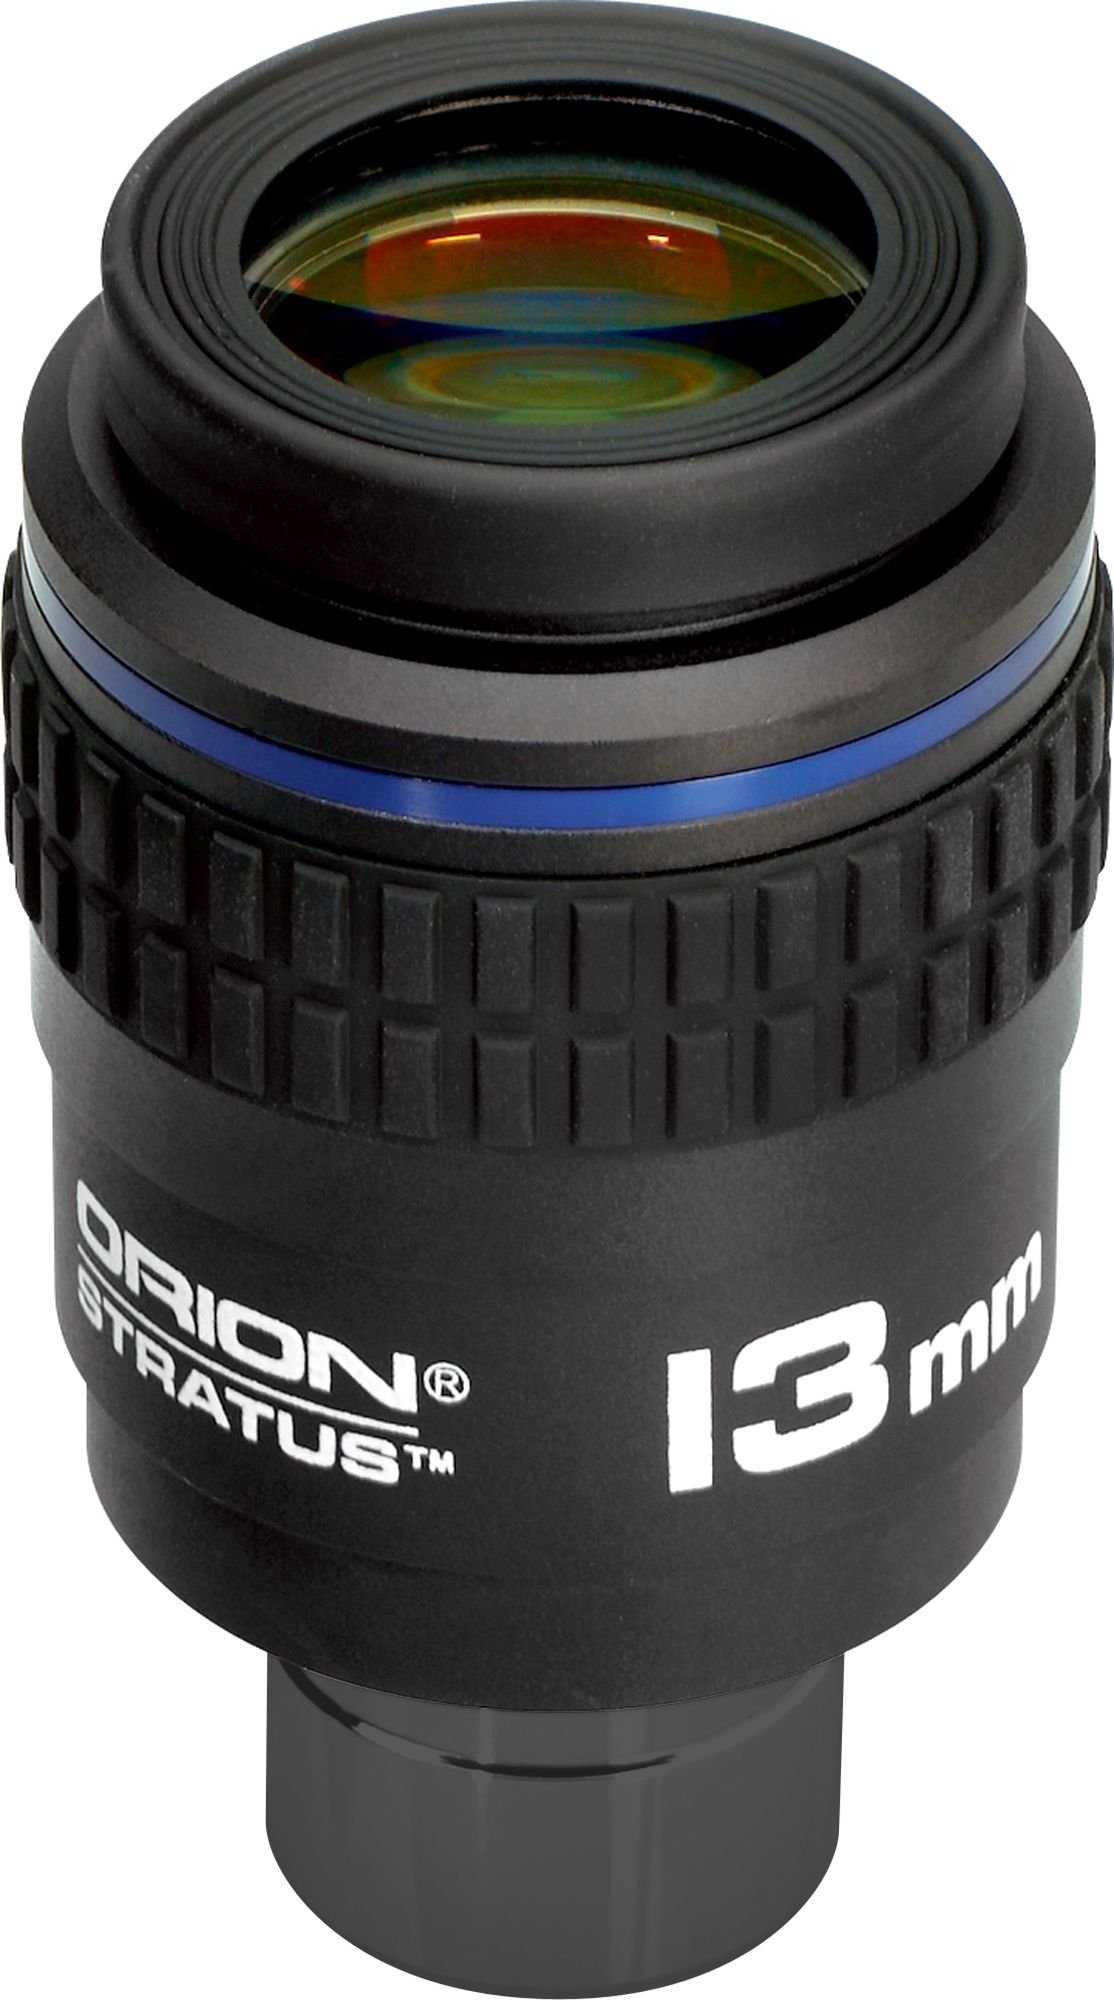 Orion 8244 13mm Stratus Wide-Field Eyepiece by Orion